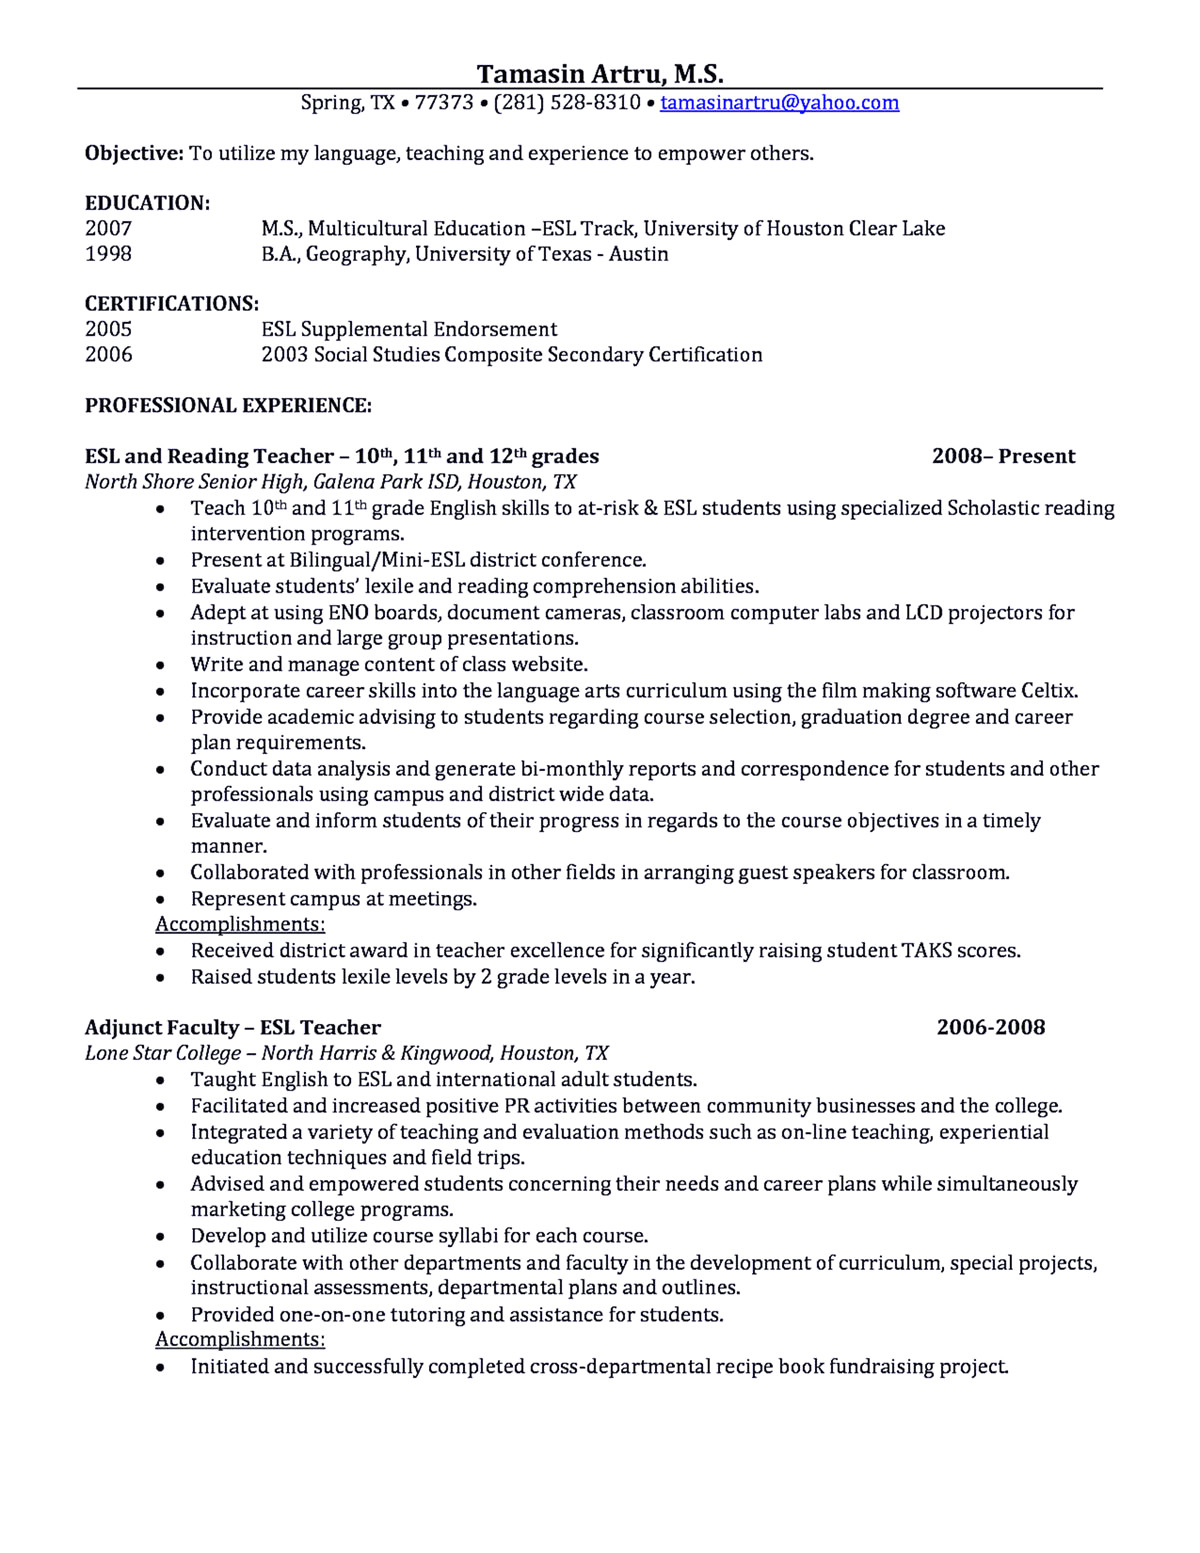 Academic Resume Template Latex - 51 Standard Resume Template Latex